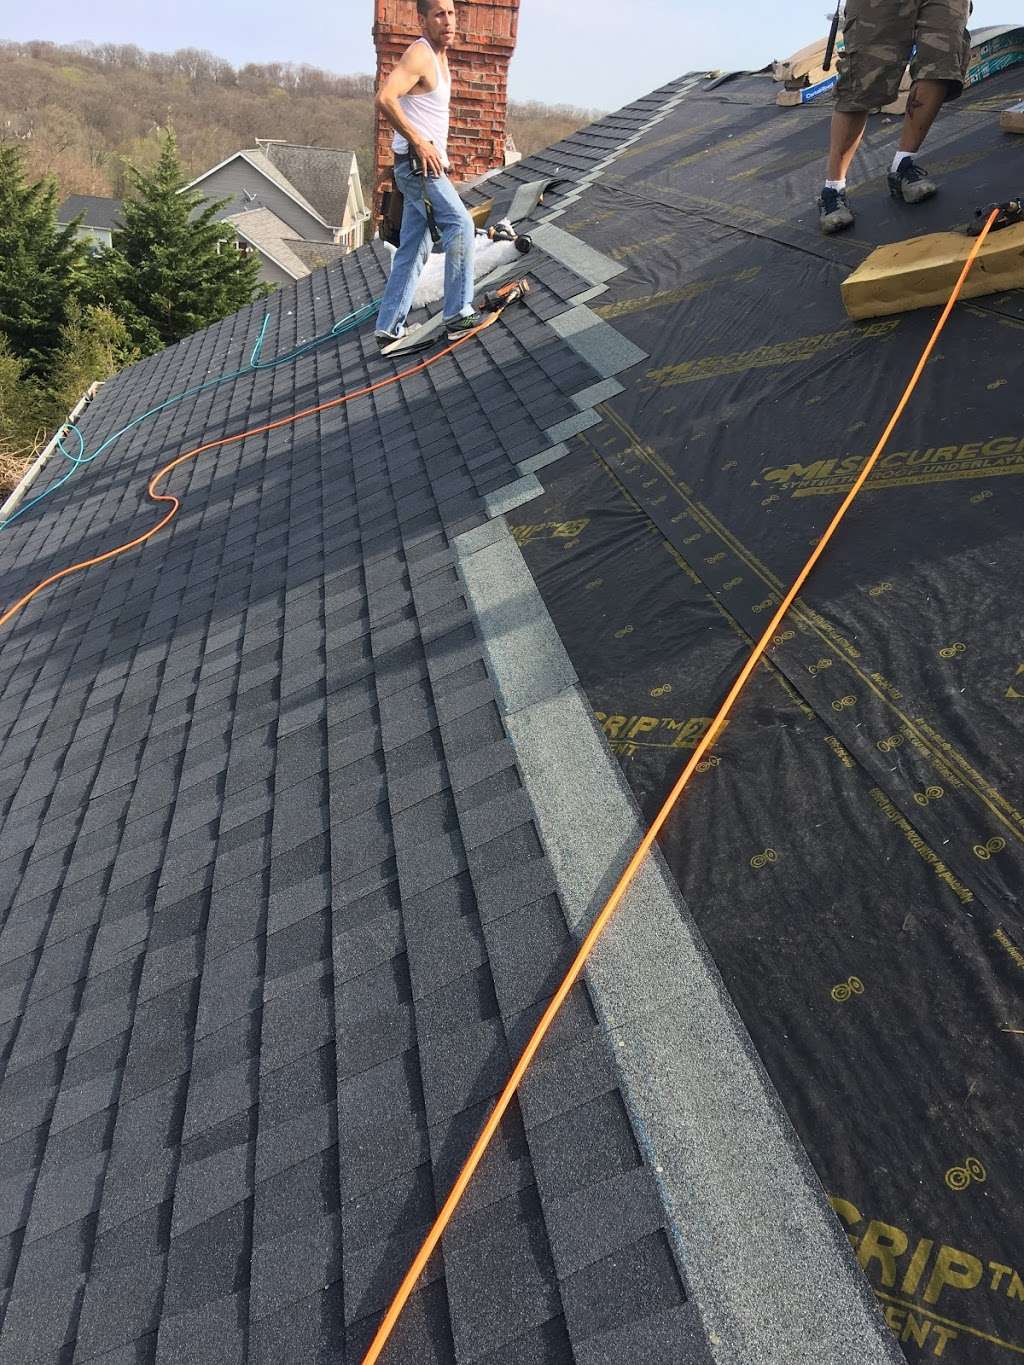 JEFFCO Premier Contracting LLC - roofing contractor  | Photo 4 of 4 | Address: 2934 N George St, York, PA 17406, USA | Phone: (717) 650-0781